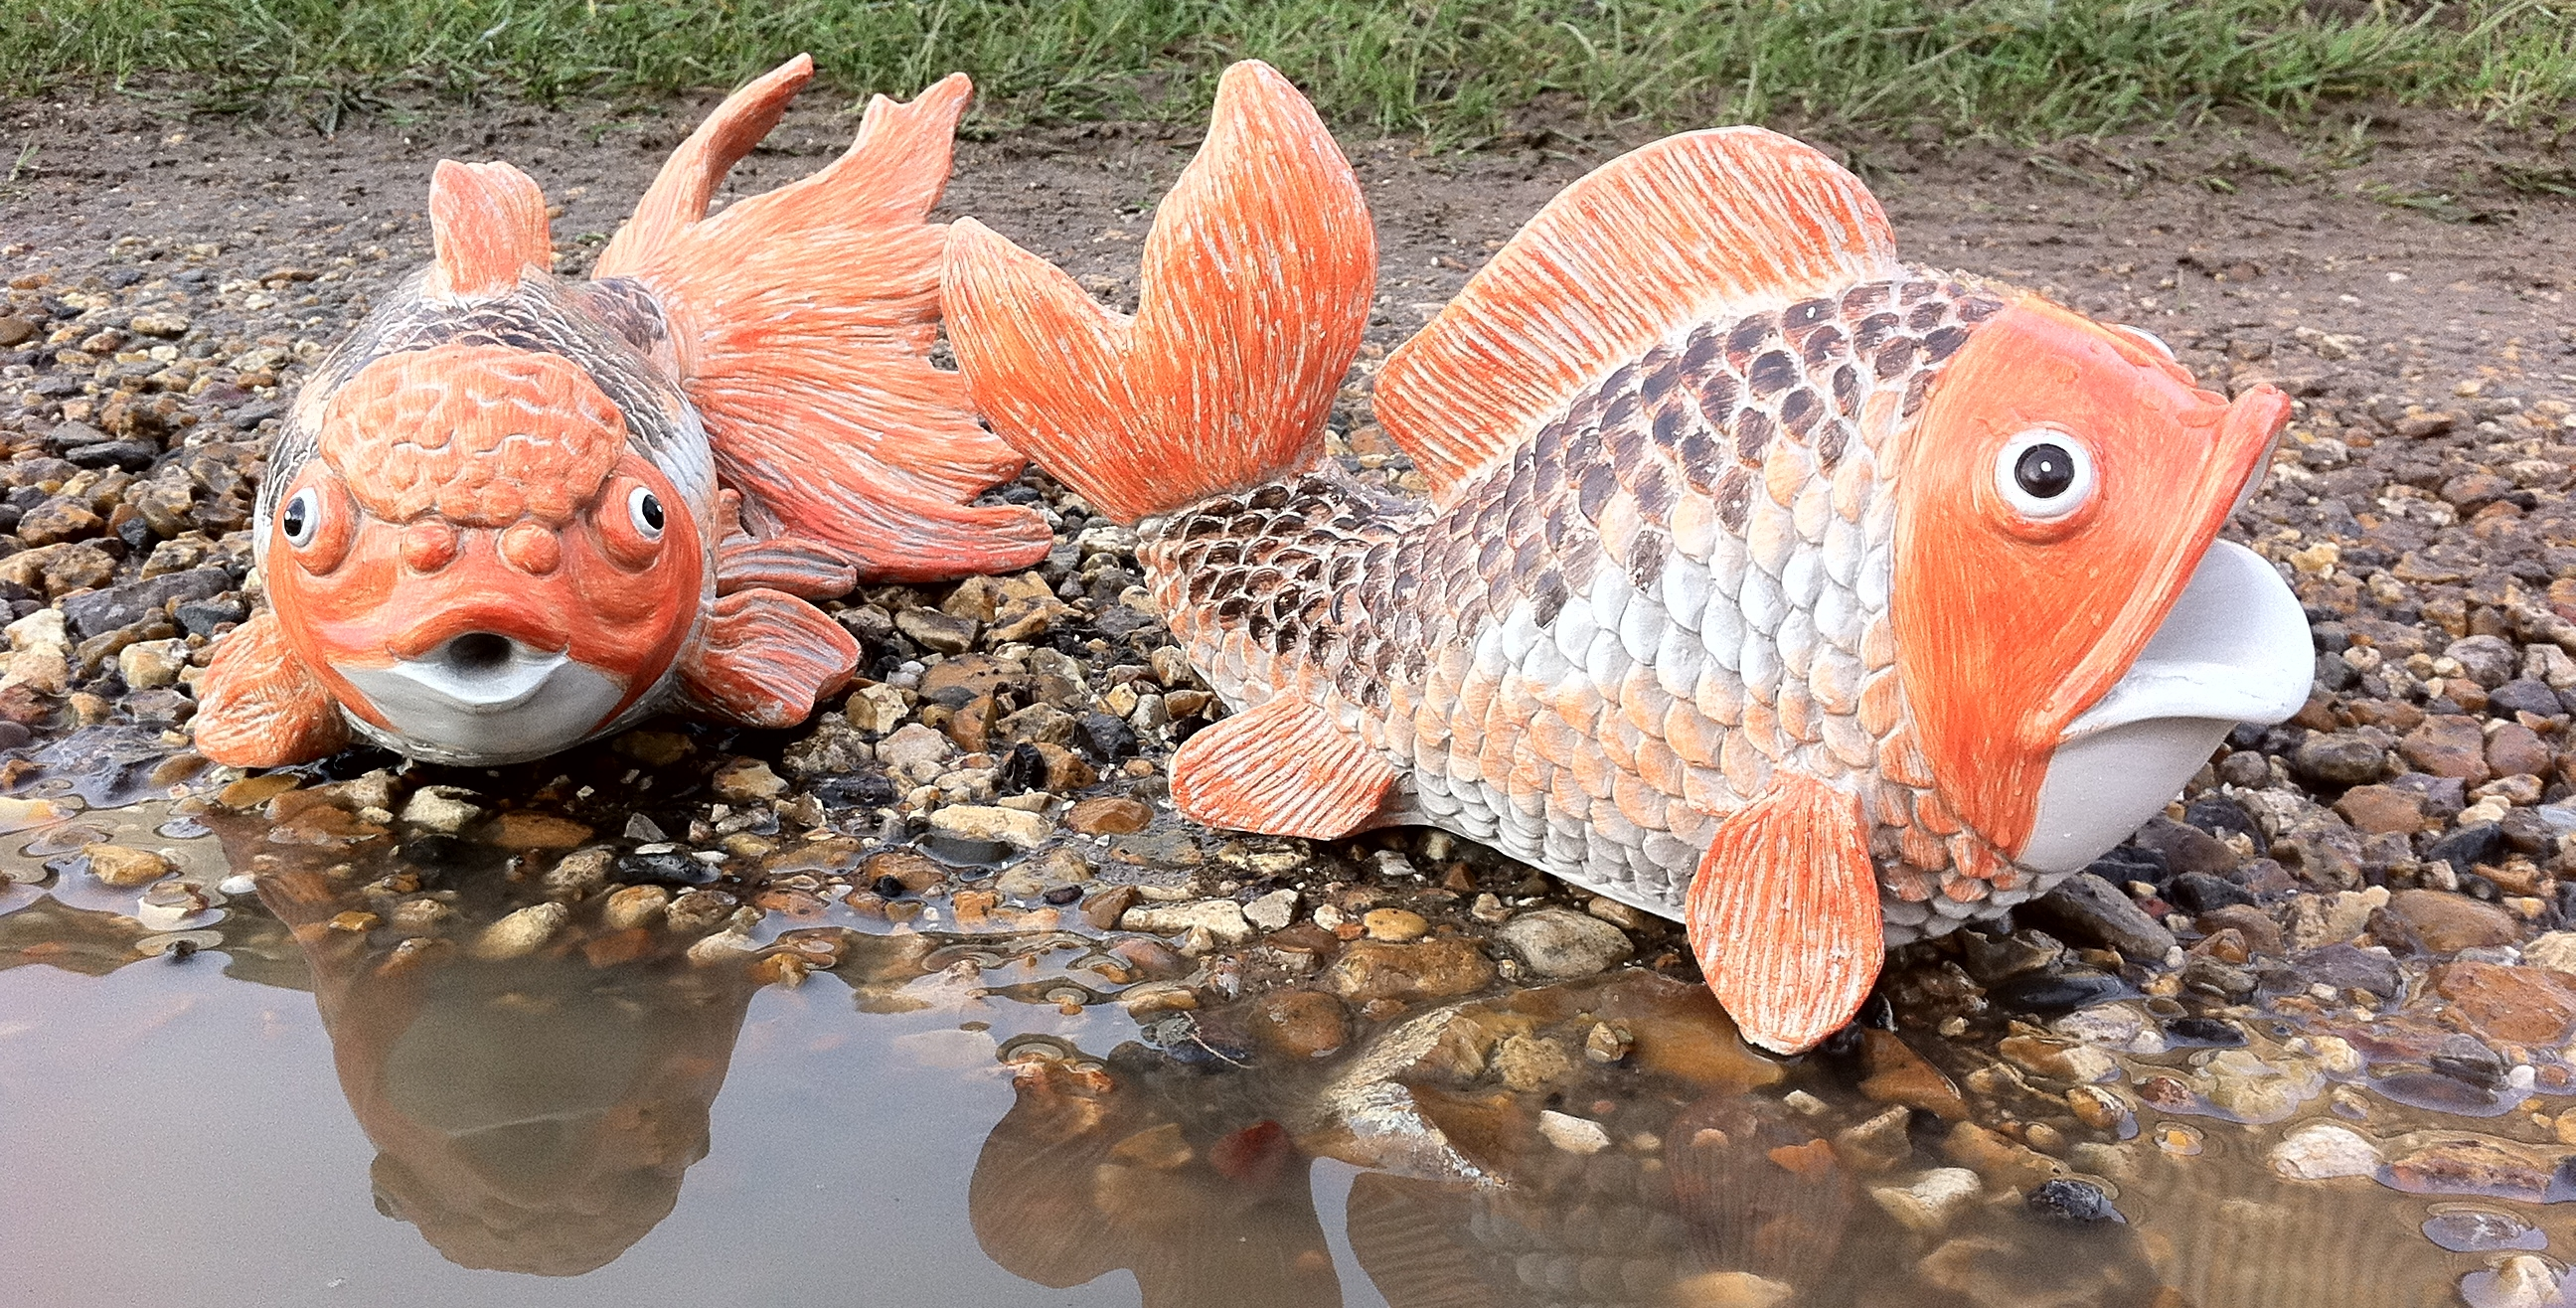 Garden pond large fish indoor outdoor resin ornament for Fish pond ornaments